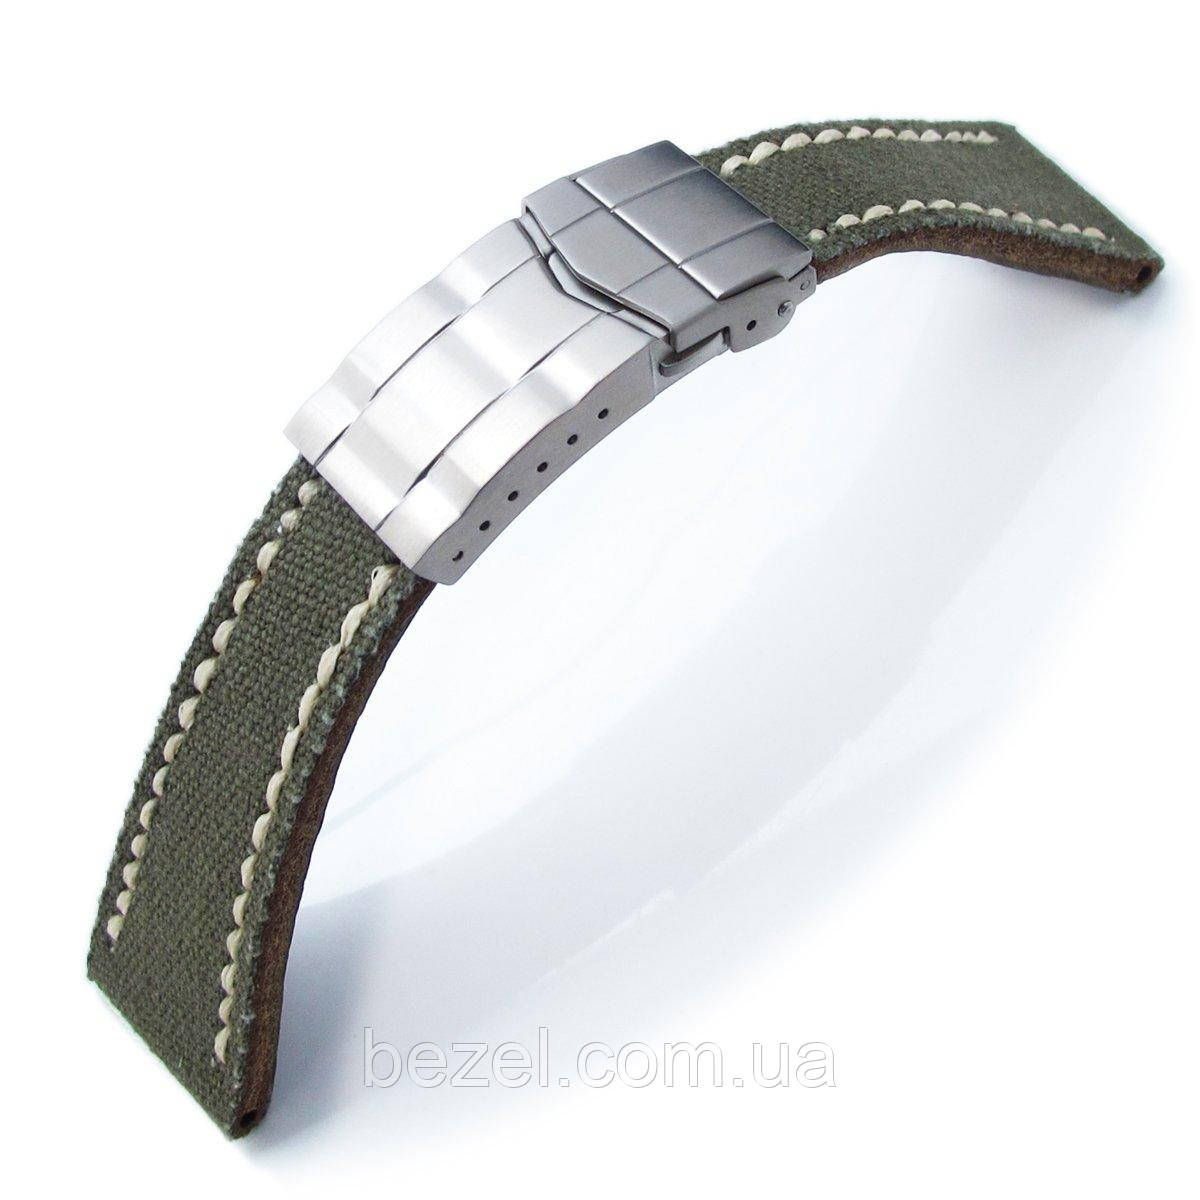 20mm or 21mm MiLTAT Military Green Canvas Submariner Clasp Watch Strap, Wax Hand Stitches